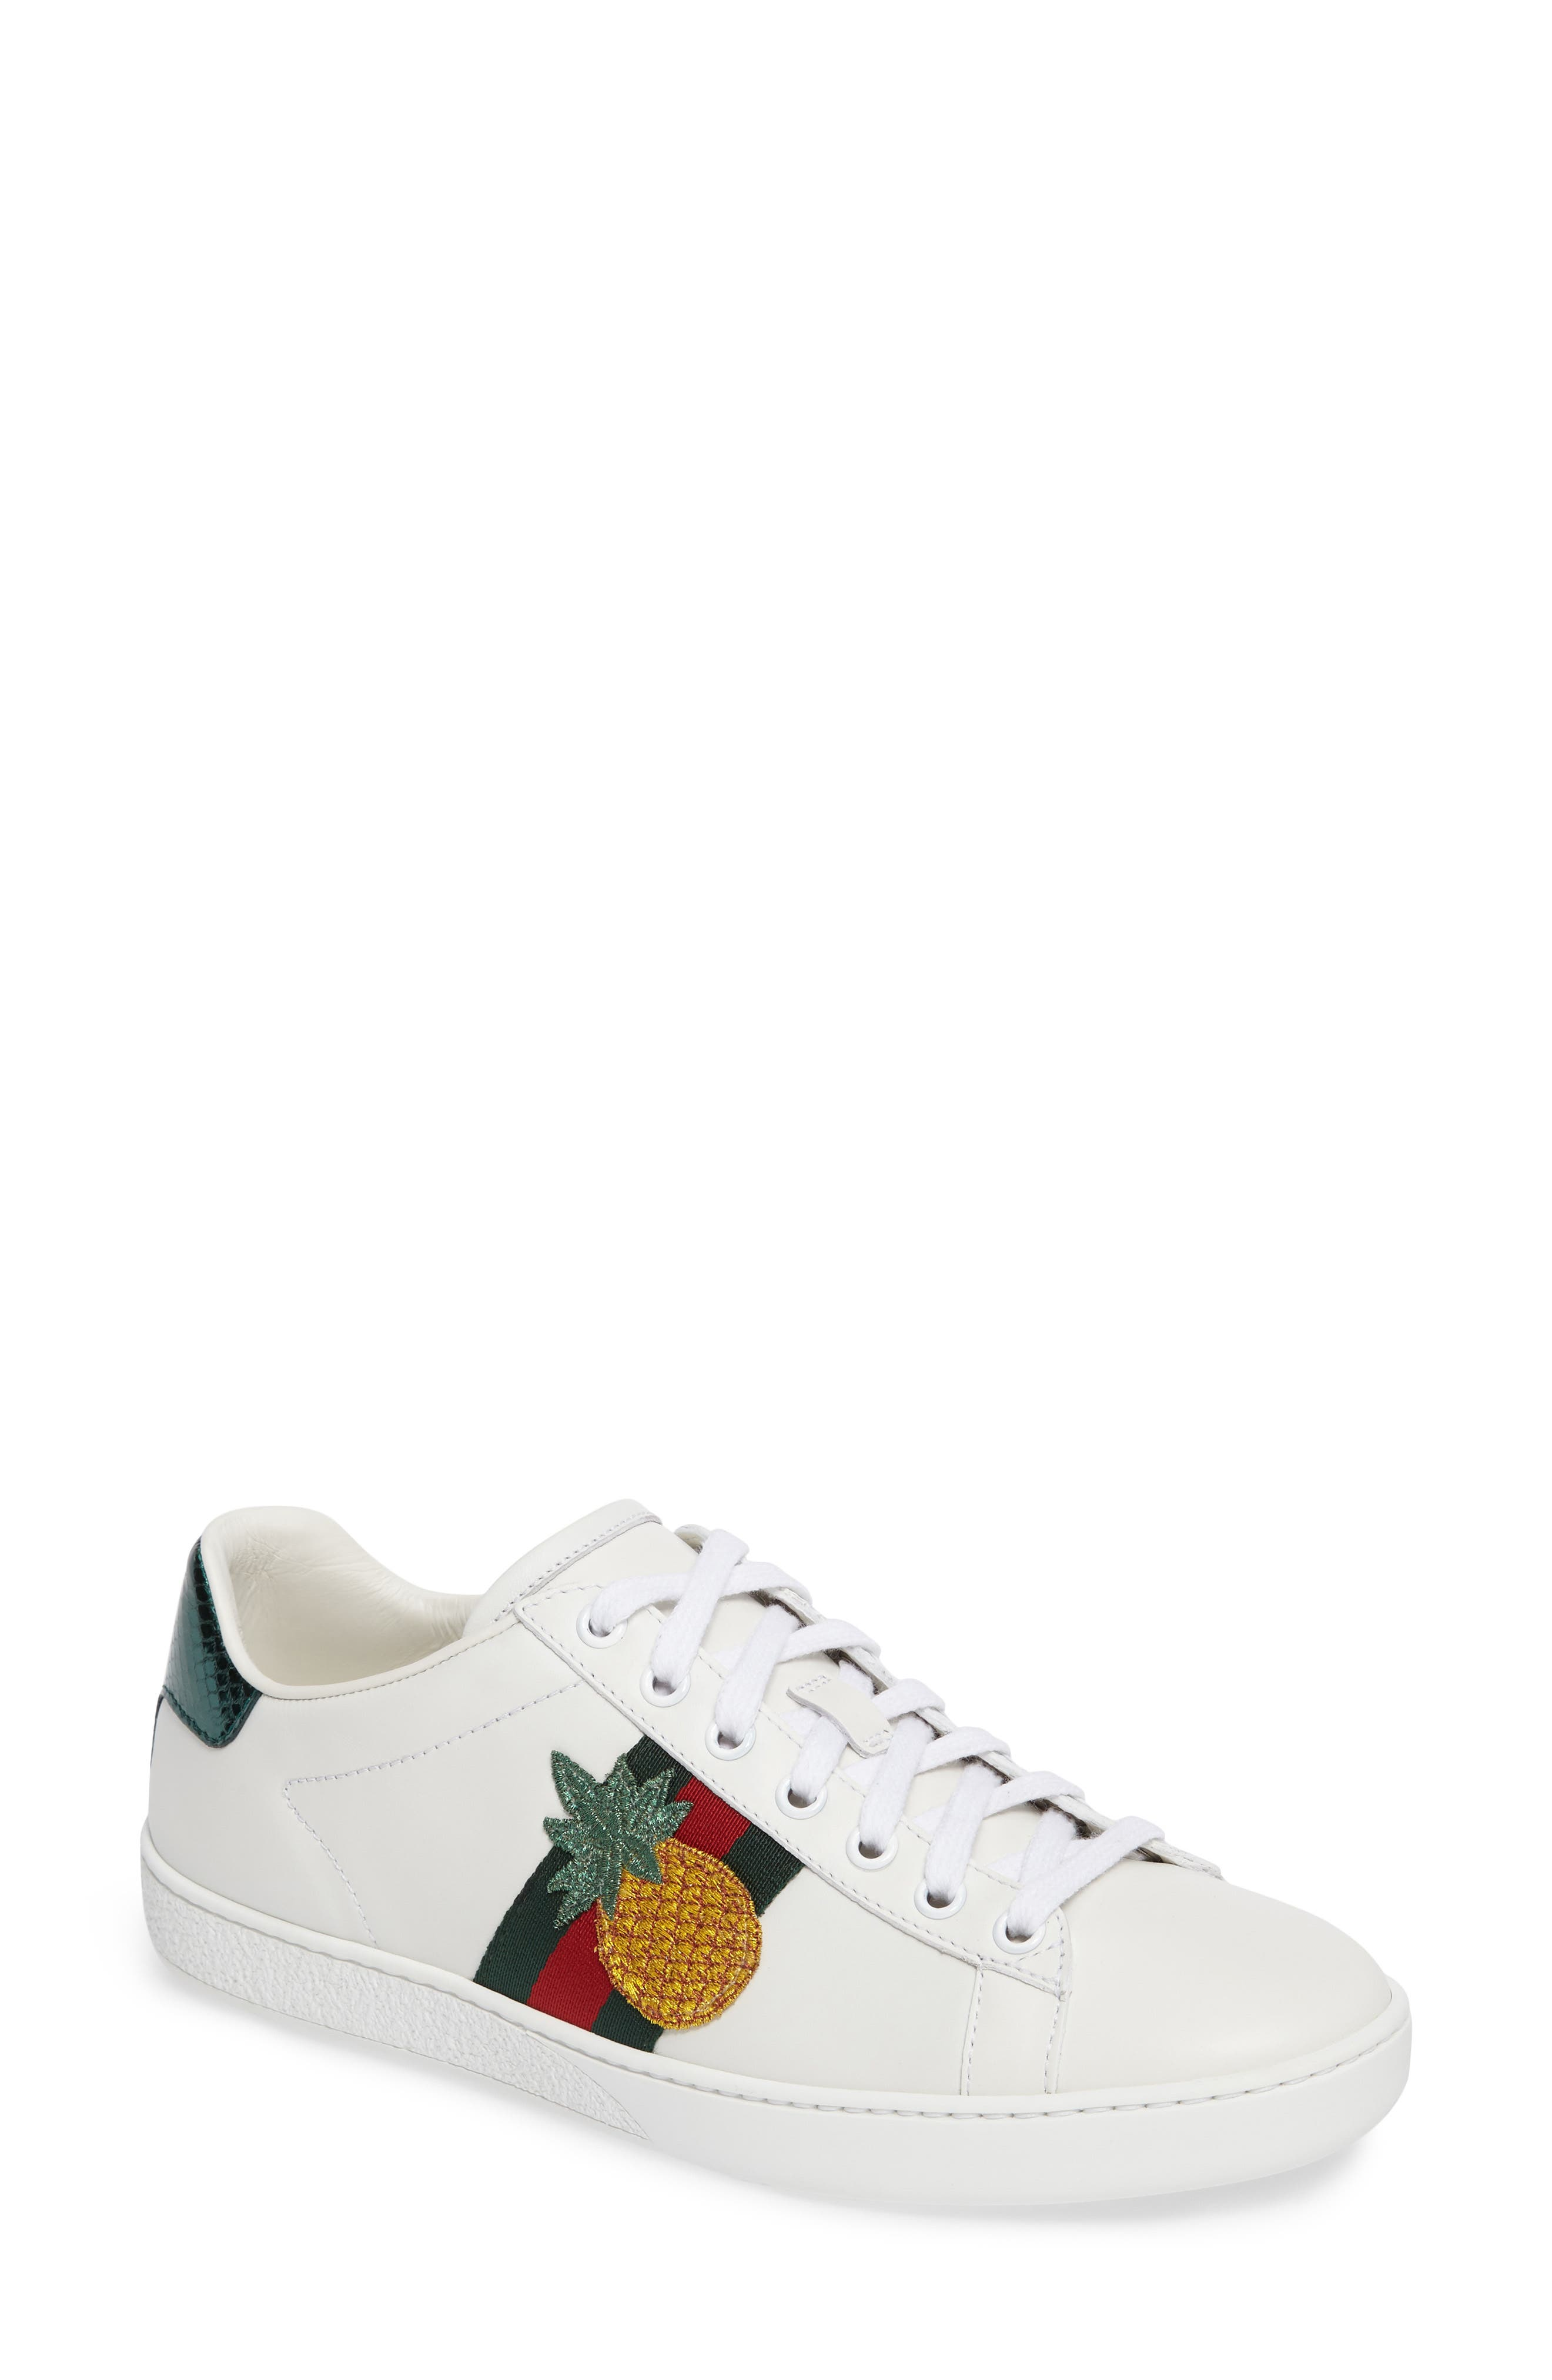 Main Image - Gucci New Ace Pineapple Sneaker (Women)